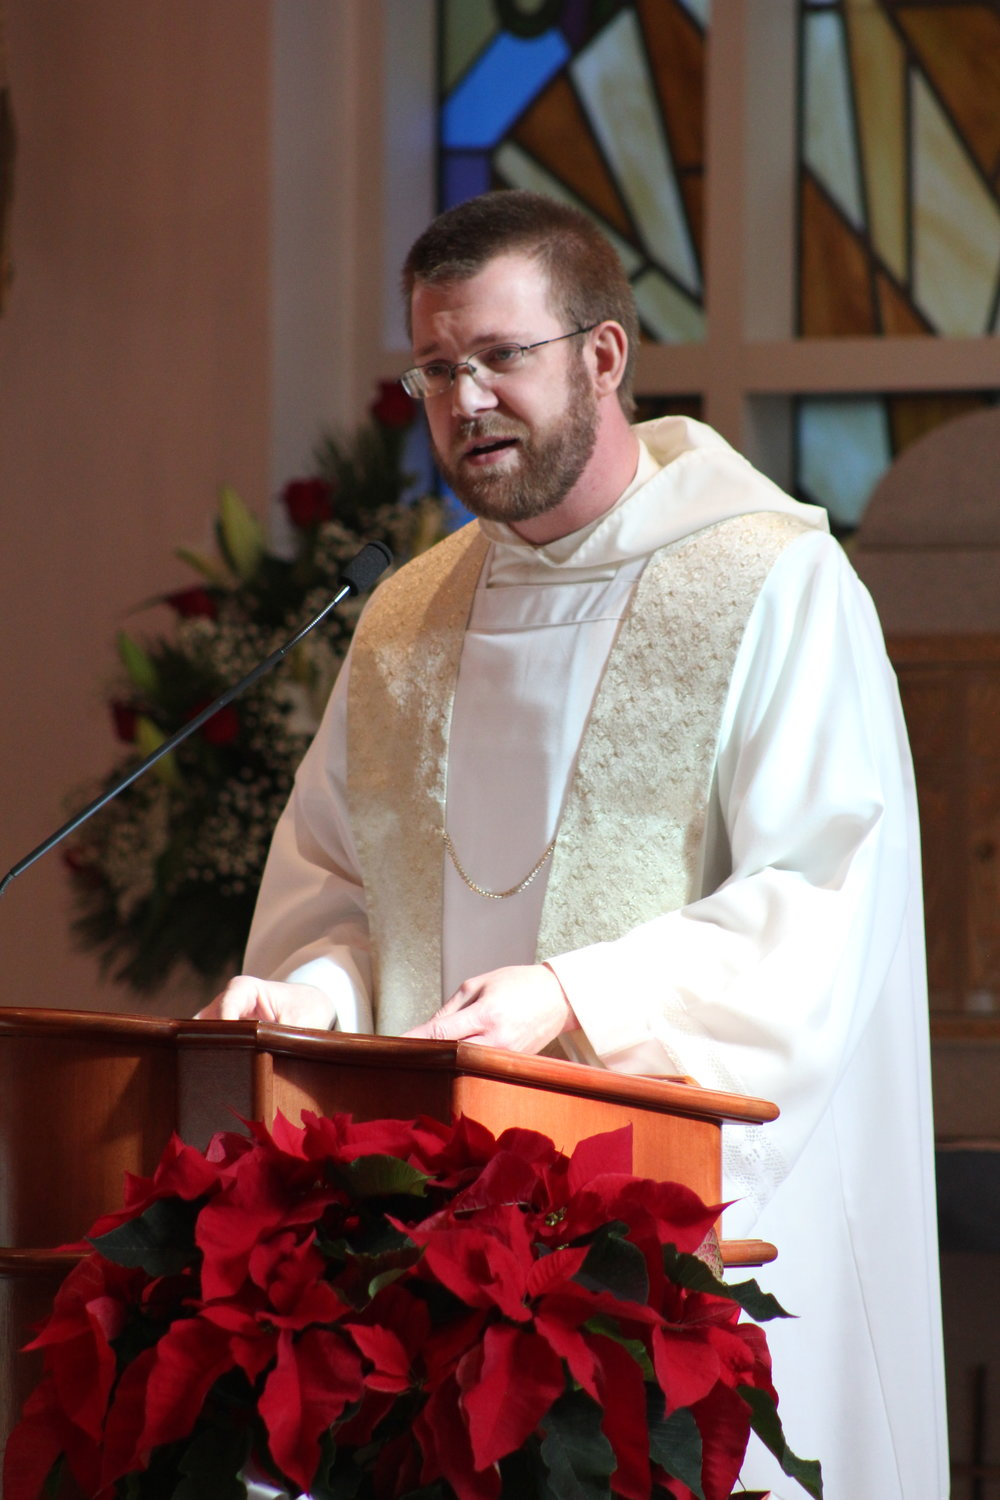 Fr. Vincent Ferrer Bagan, OP, delivers the homily -  click here to read it!